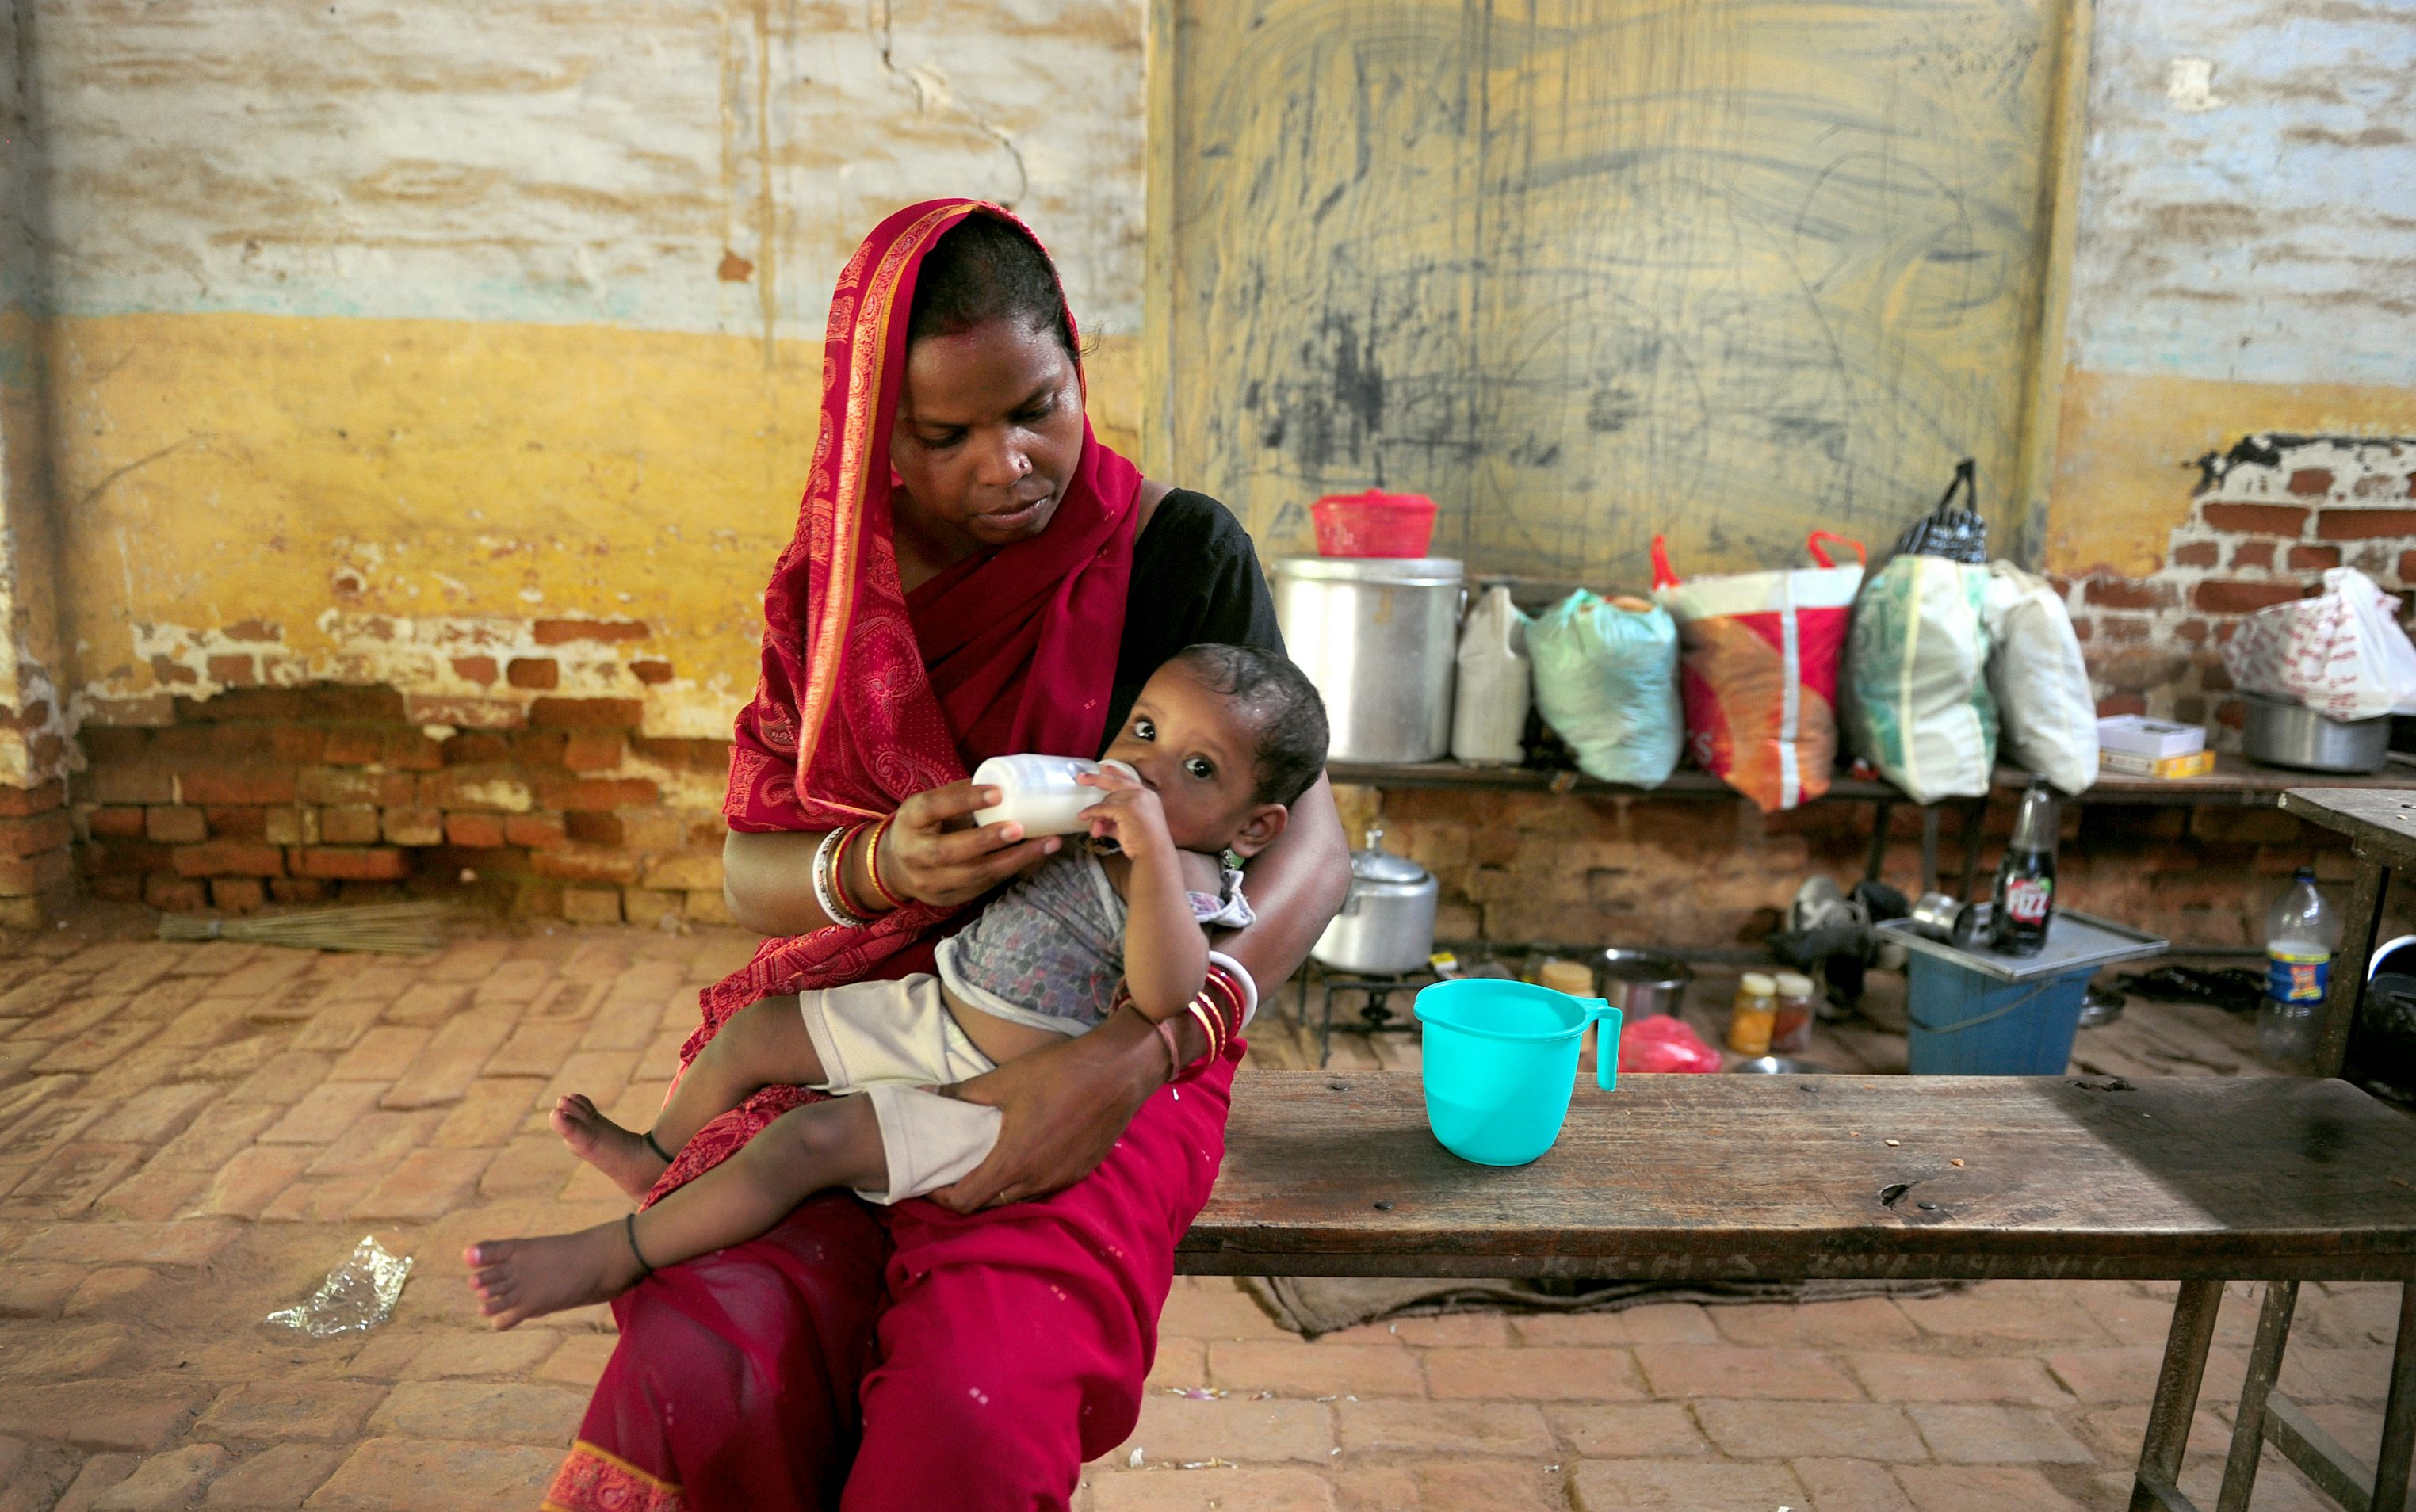 A Flood-affected Woman Feeds Her Baby At A Local Shelter In Allahabad On August 4, 2013.  The Monsoon, Which Covers The Subcontinent From June To September And Usually Brings Flooding, Accounts For About 80 Percent Of India's Annual Rainfall.          AFP PHOTO/ SANJAY KANOJIA        (Photo Credit Should Read Sanjay Kanojia/AFP/Getty Images)